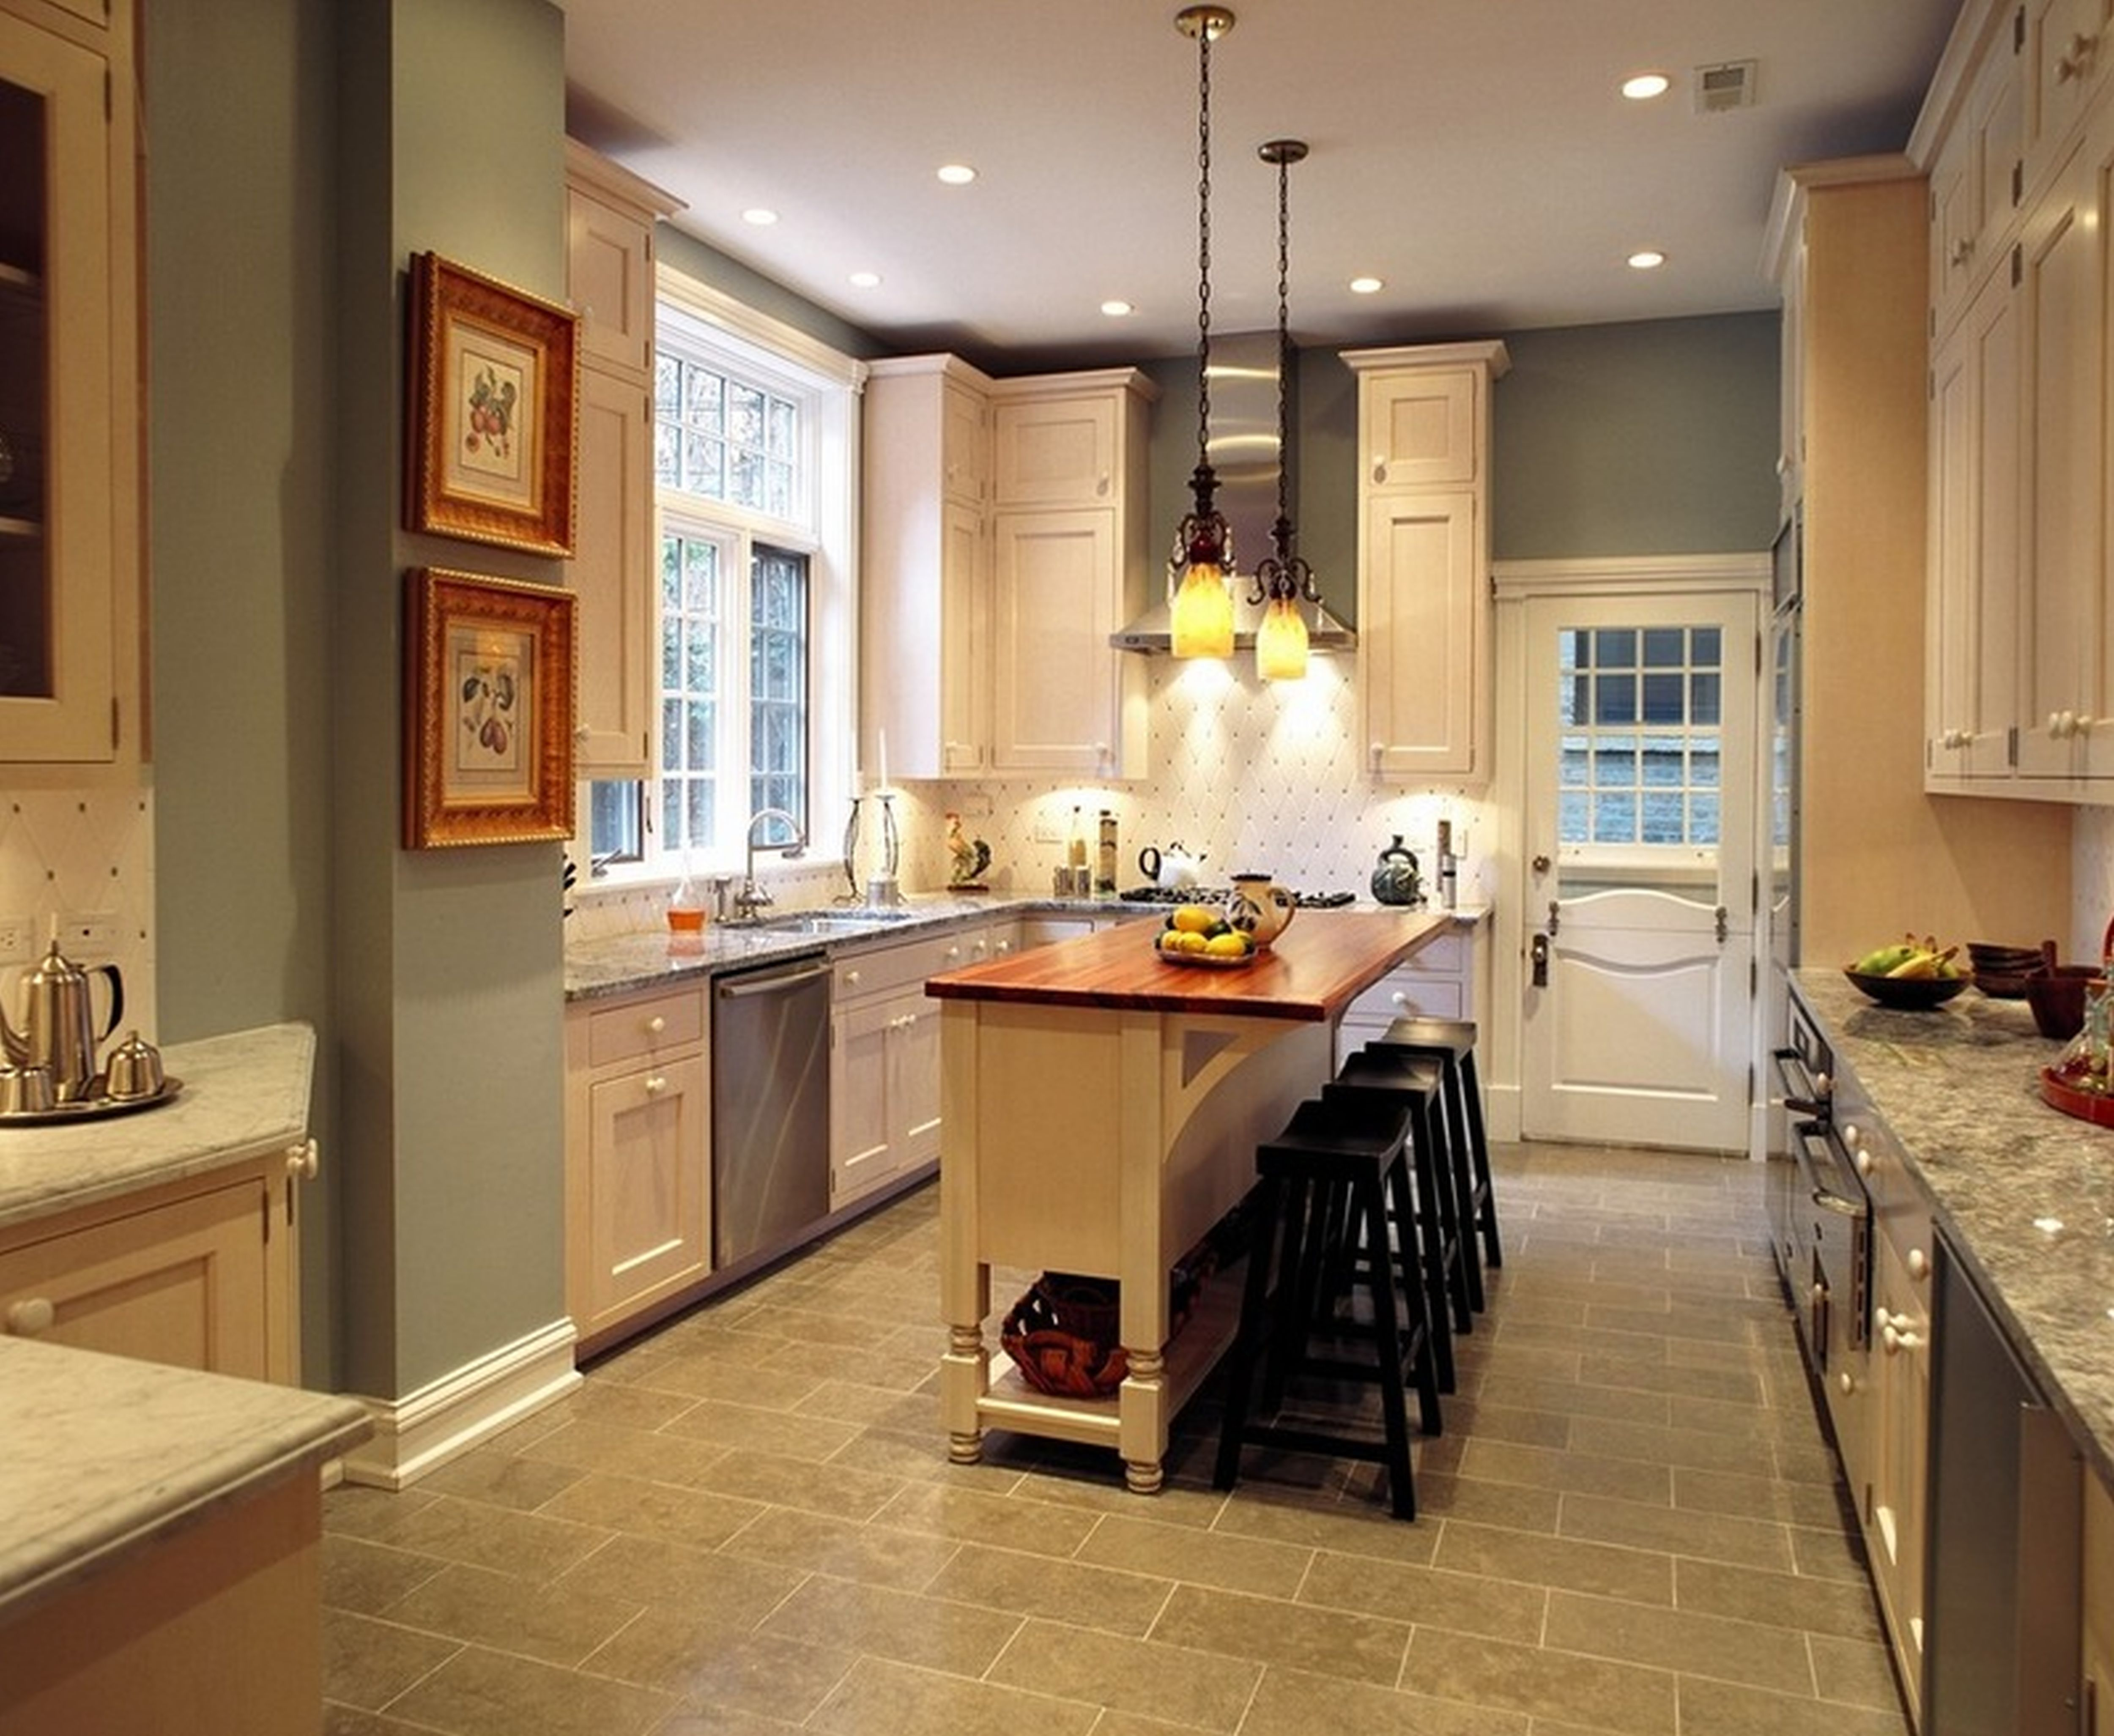 Magnificent eat in kitchen in home decor ideas with eat in kitchen